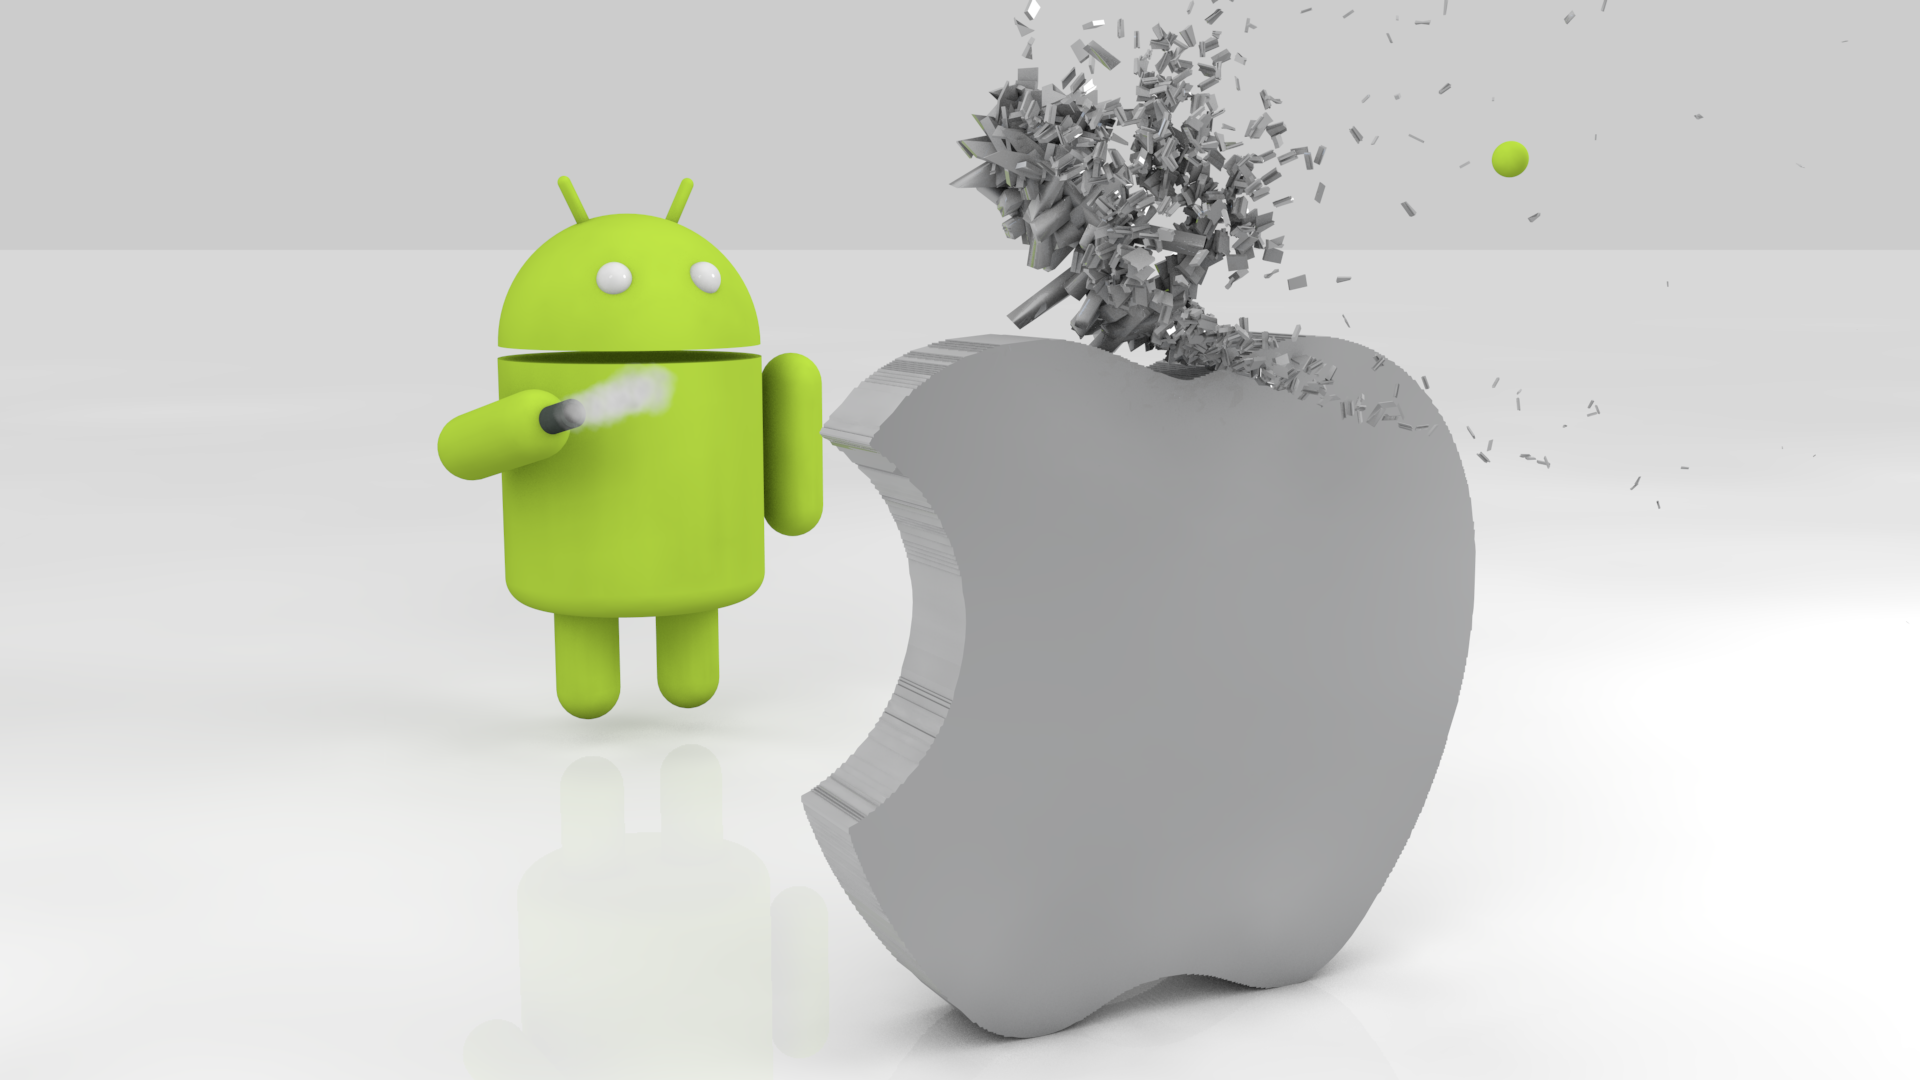 Android Apple Wallpaper: Android Is Twice As Popular As IPhone, According To Poll